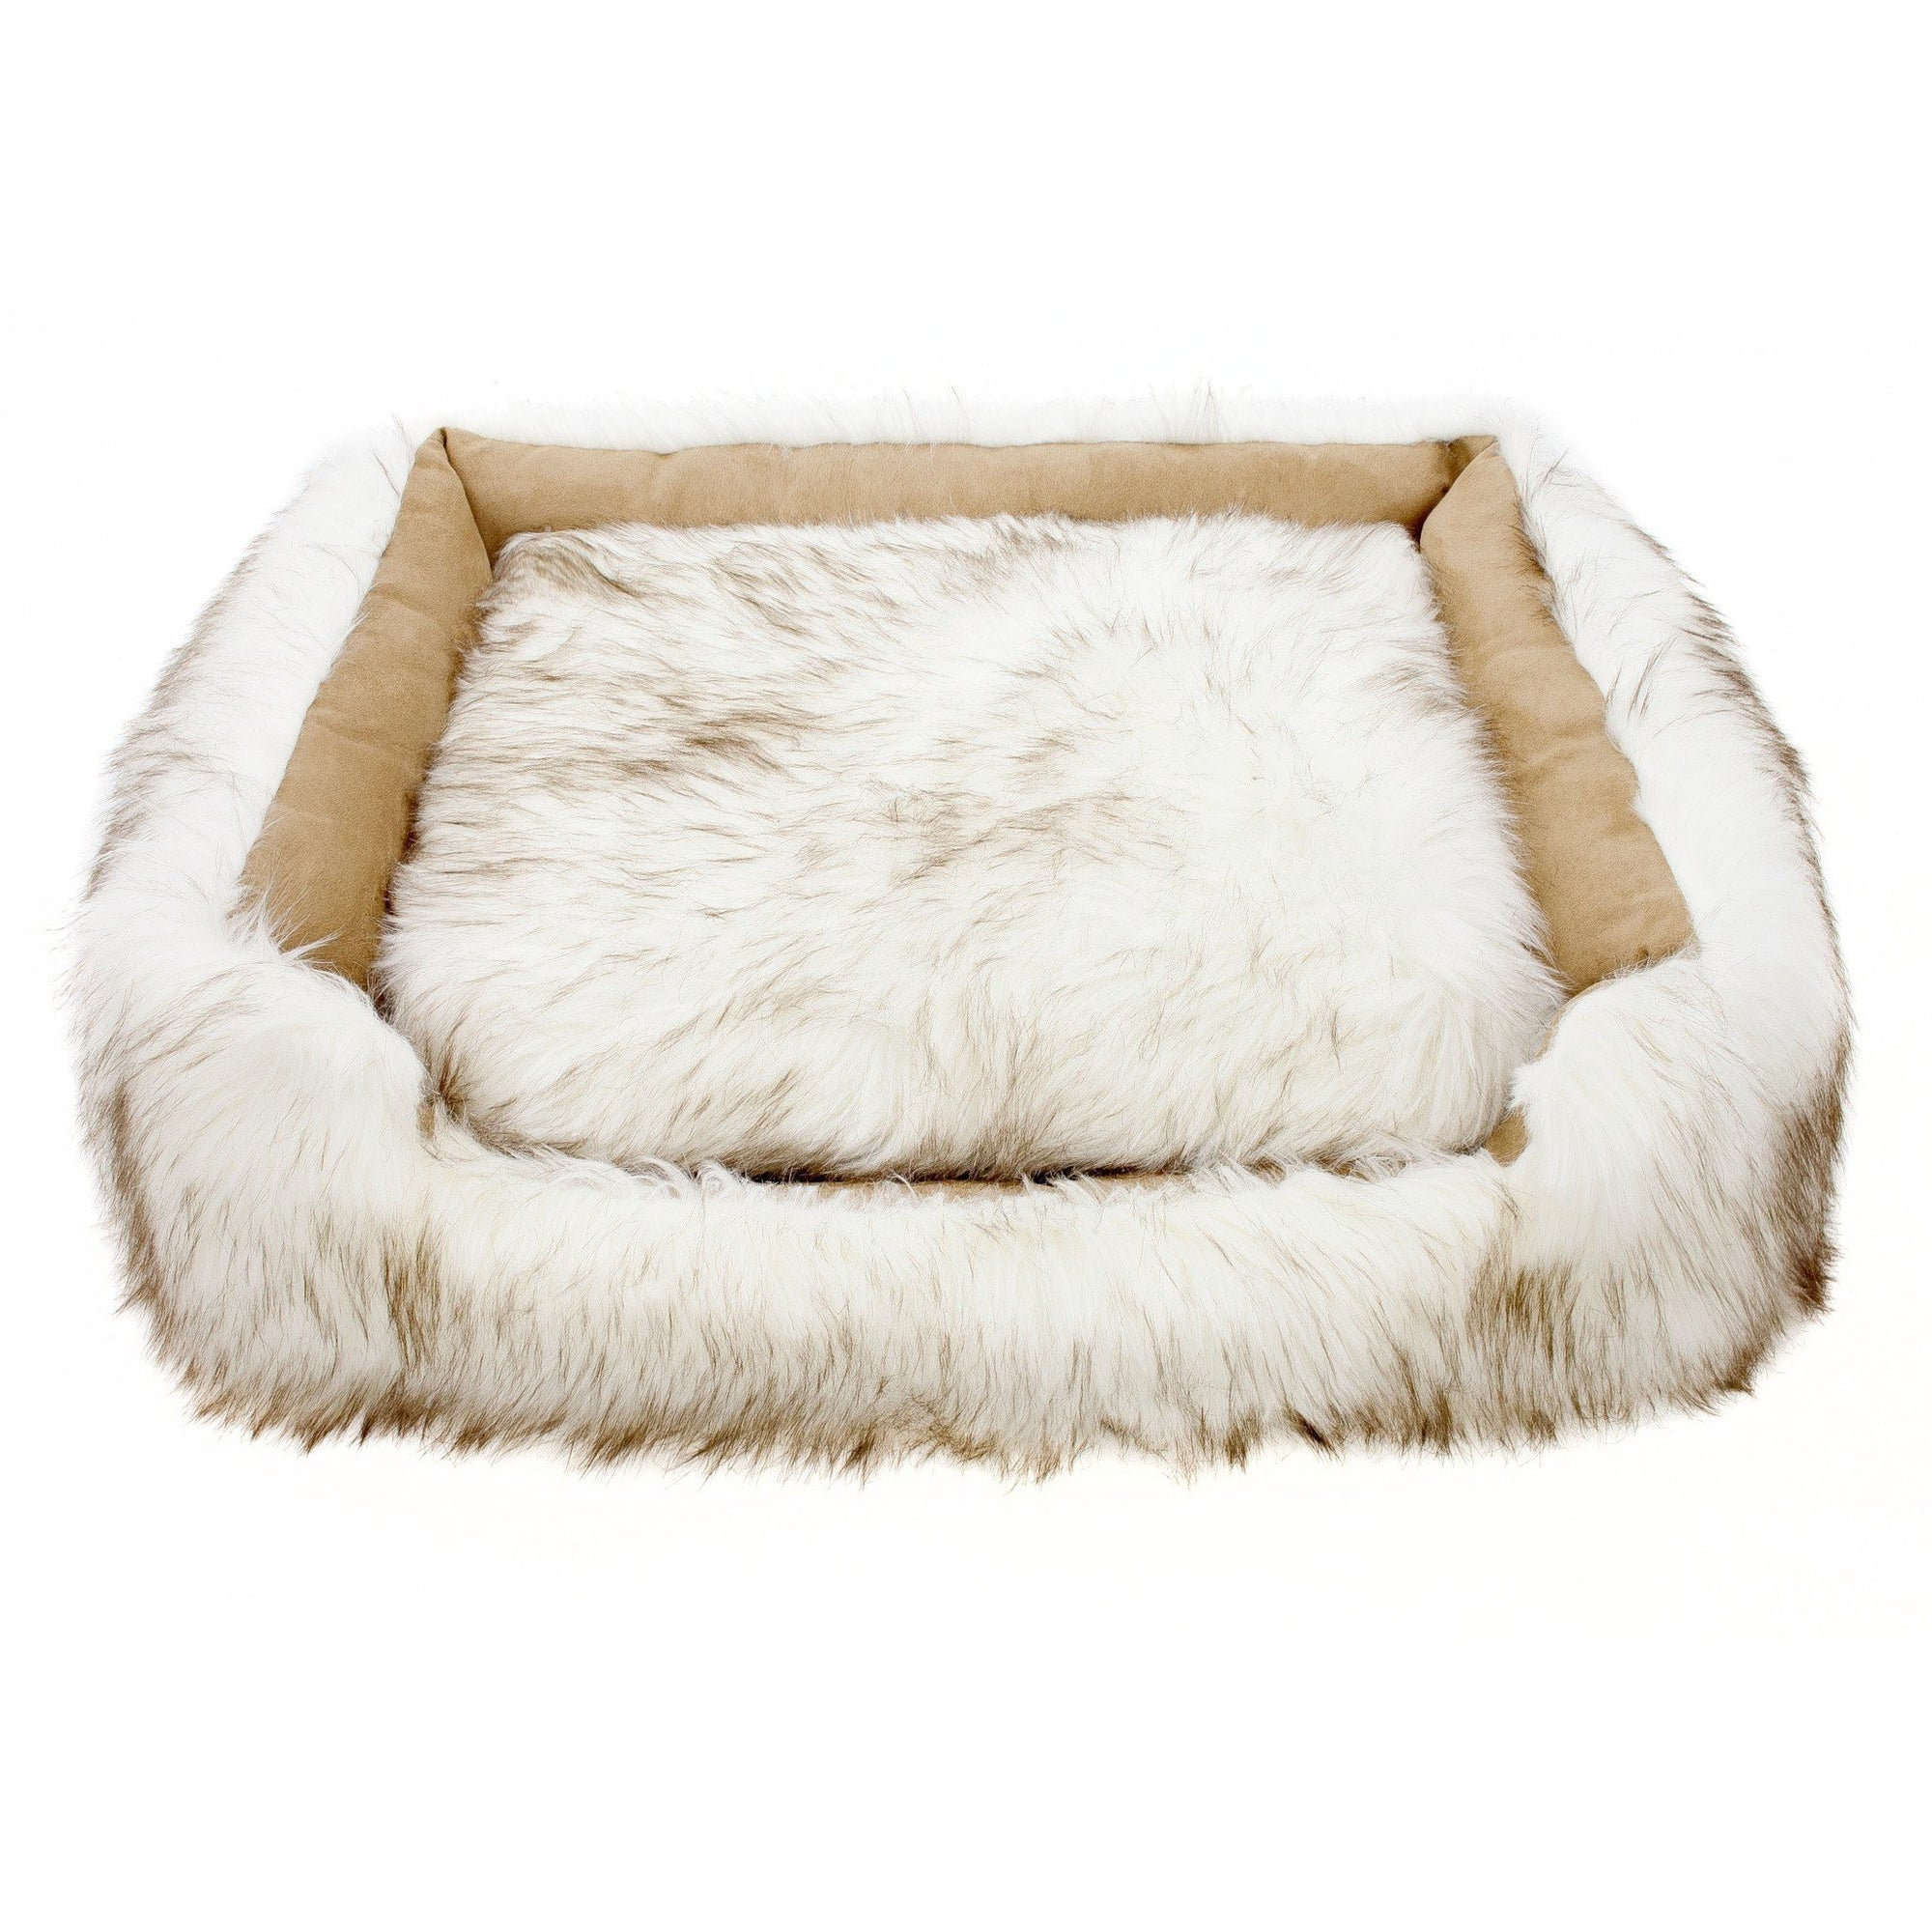 fabulous beds in company stirling handmade dog the bed uk luxury